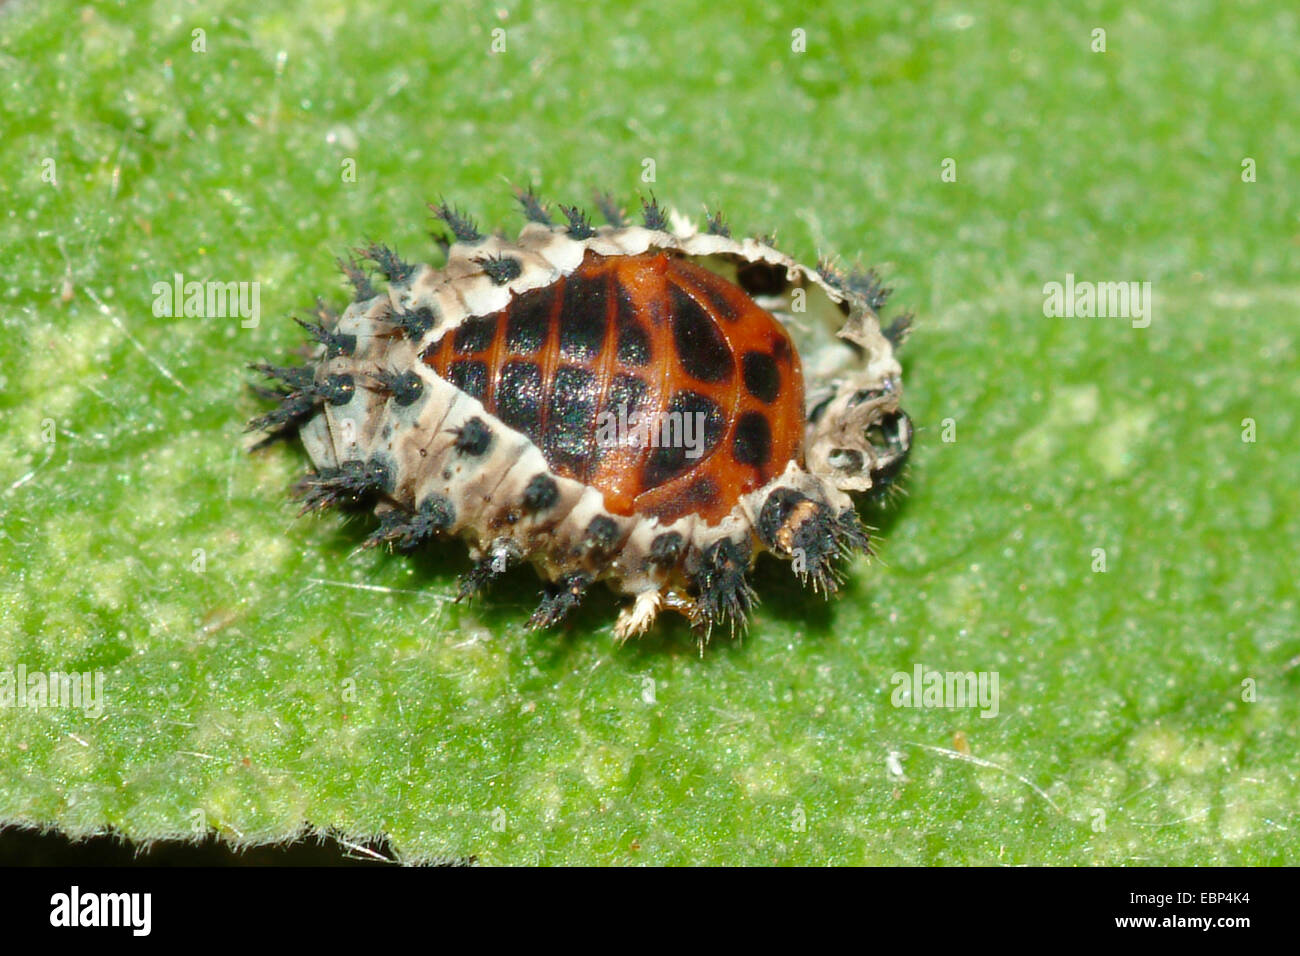 ladybirds, ladybird beetles, lady beetles, ladybugs (Coccinellidae), laybird hatching from pupa, Teich Heiligenberg - Stock Image